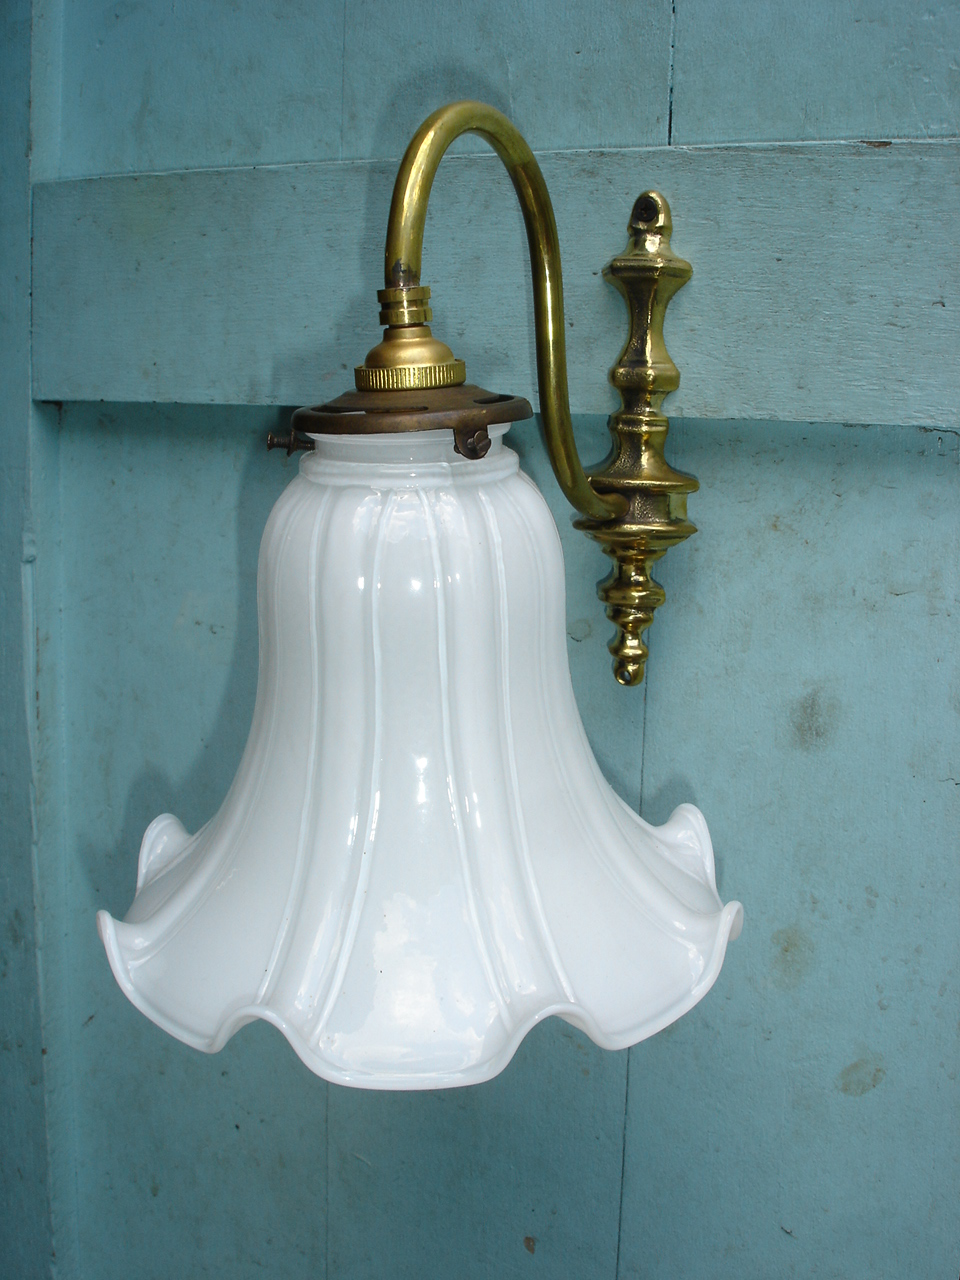 Wall Lamp JL01C size shade high 140 mm. wide 17.5 cm. top 56 mm.bracket 9 mm.deep 22 cm.